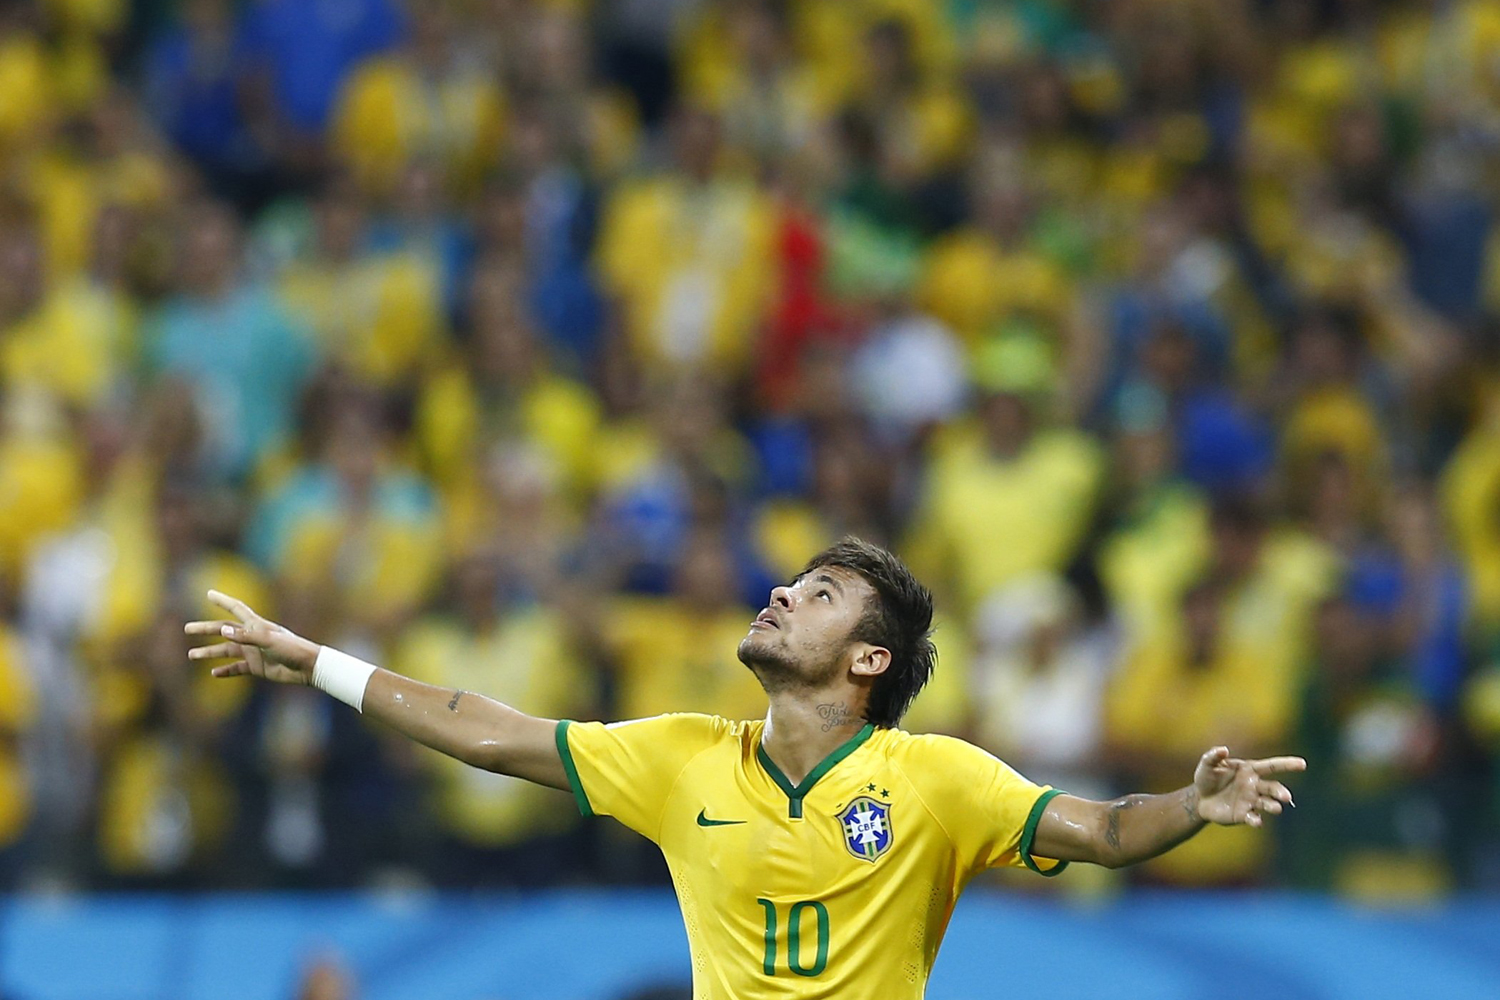 Jun. 12, 2014. Brazil's Neymar celebrates a goal during the 2014 World Cup opening match between Brazil and Croatia at the Corinthians arena in Sao Paulo.